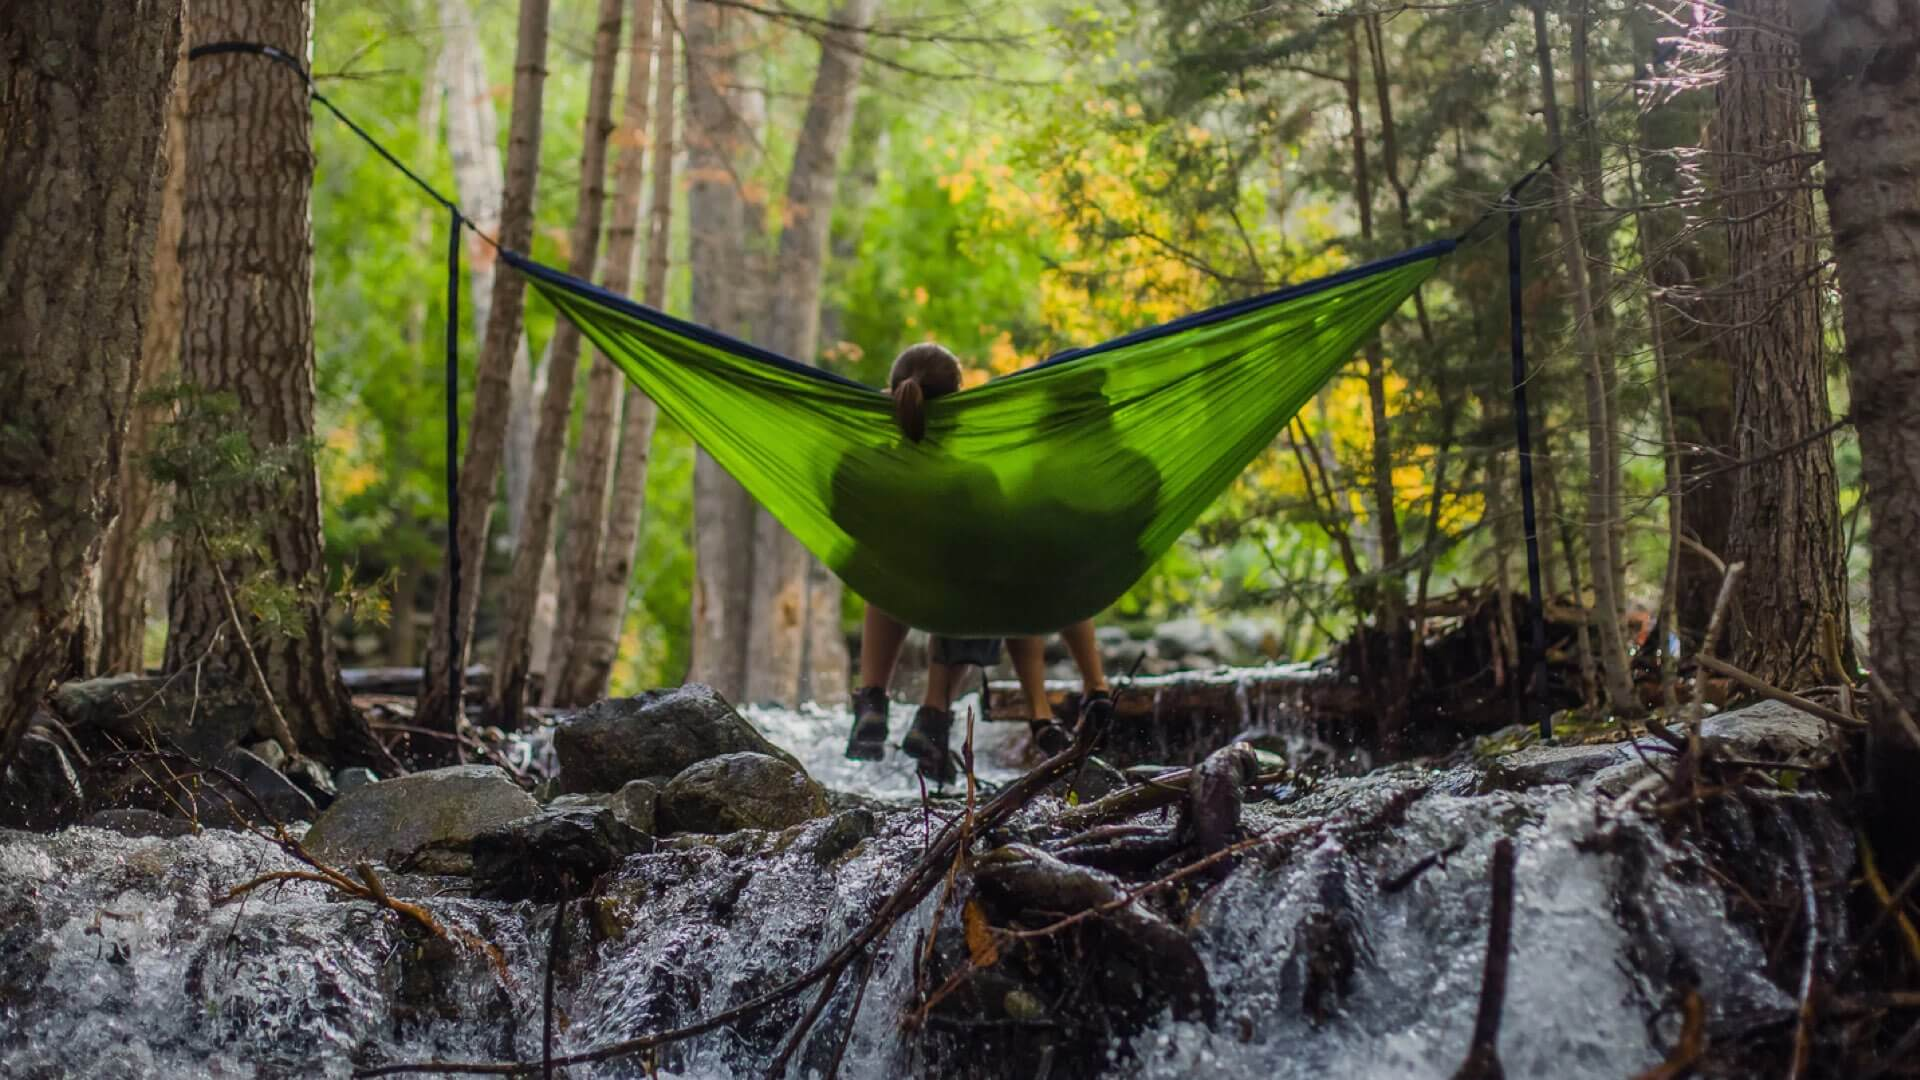 Digital Detoxing; Two people sitting in a hammock in the wilderness